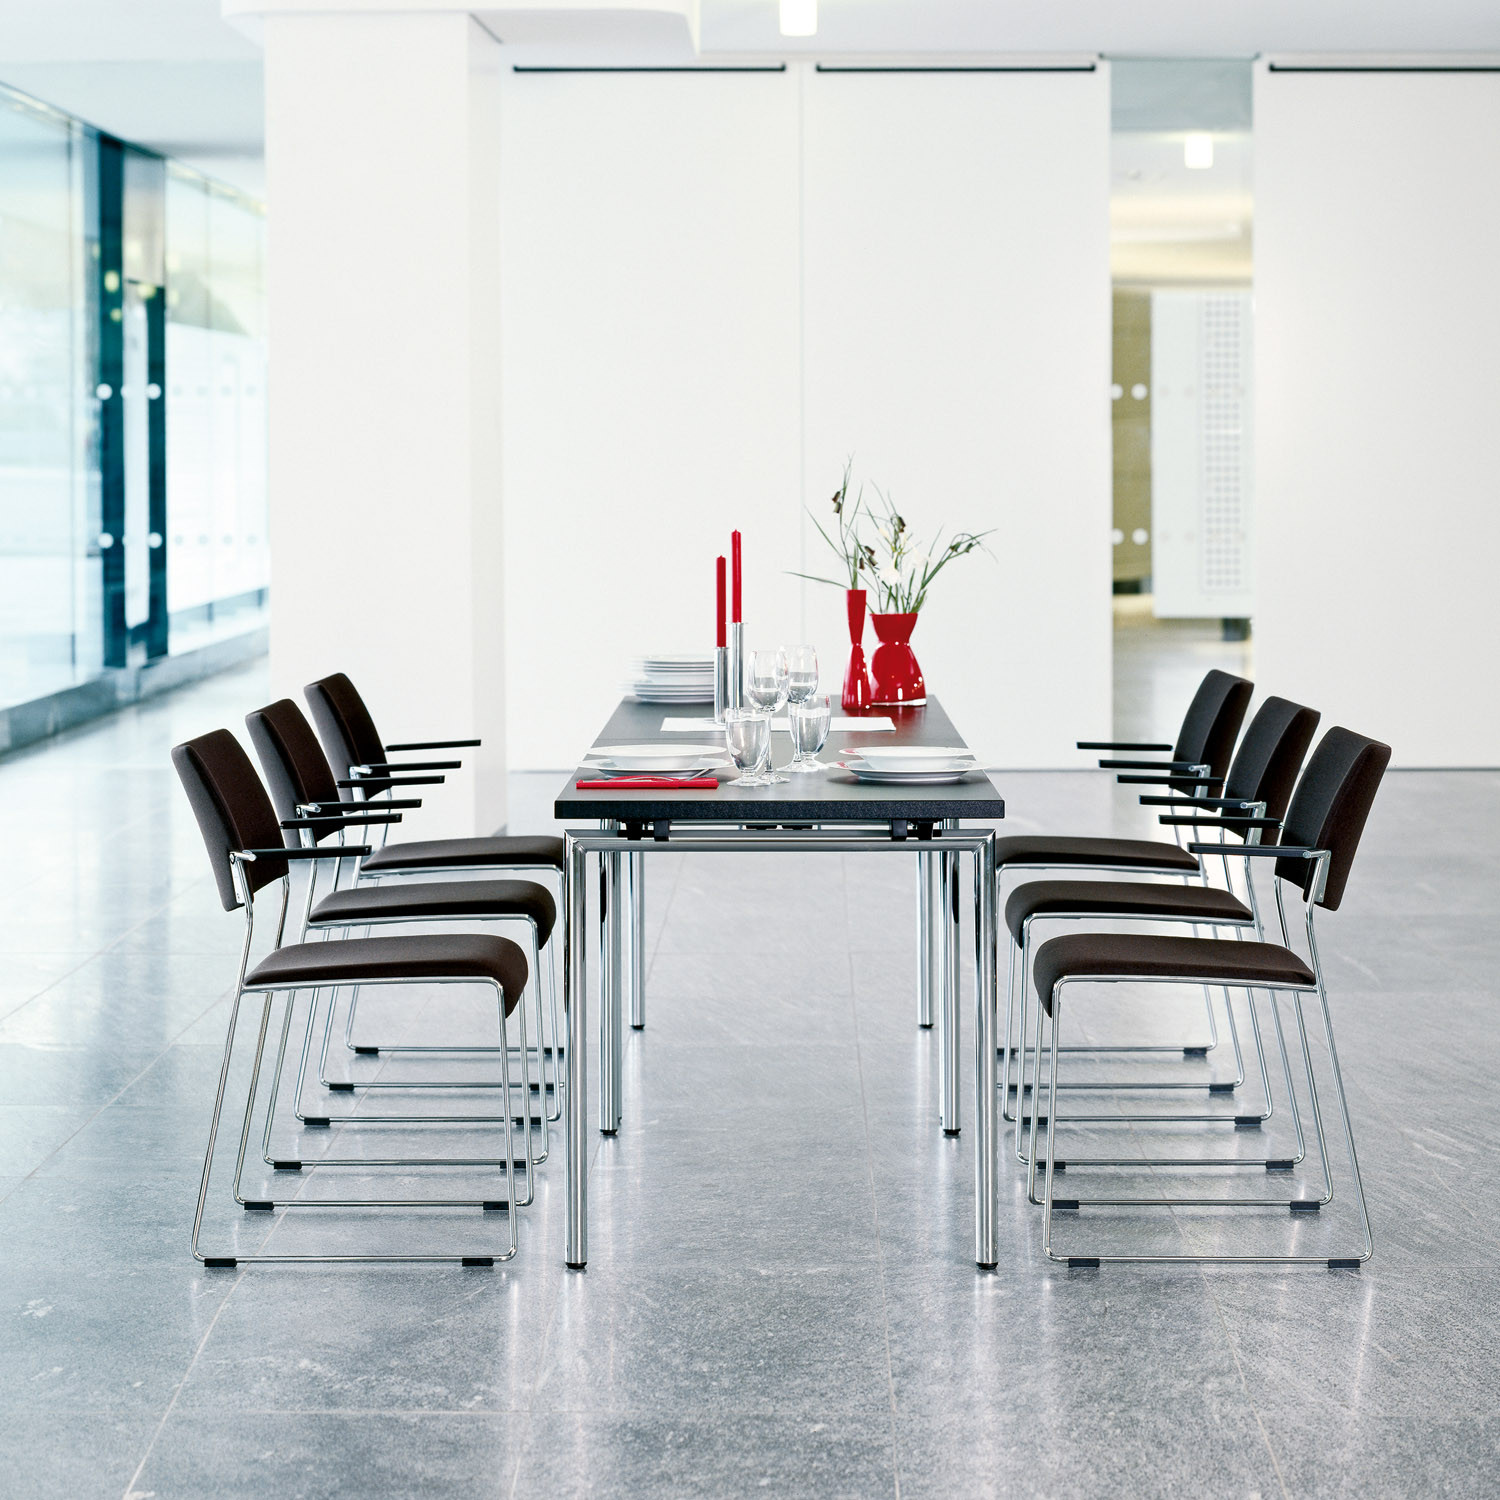 Linos Cafeteria Chairs with Armrests